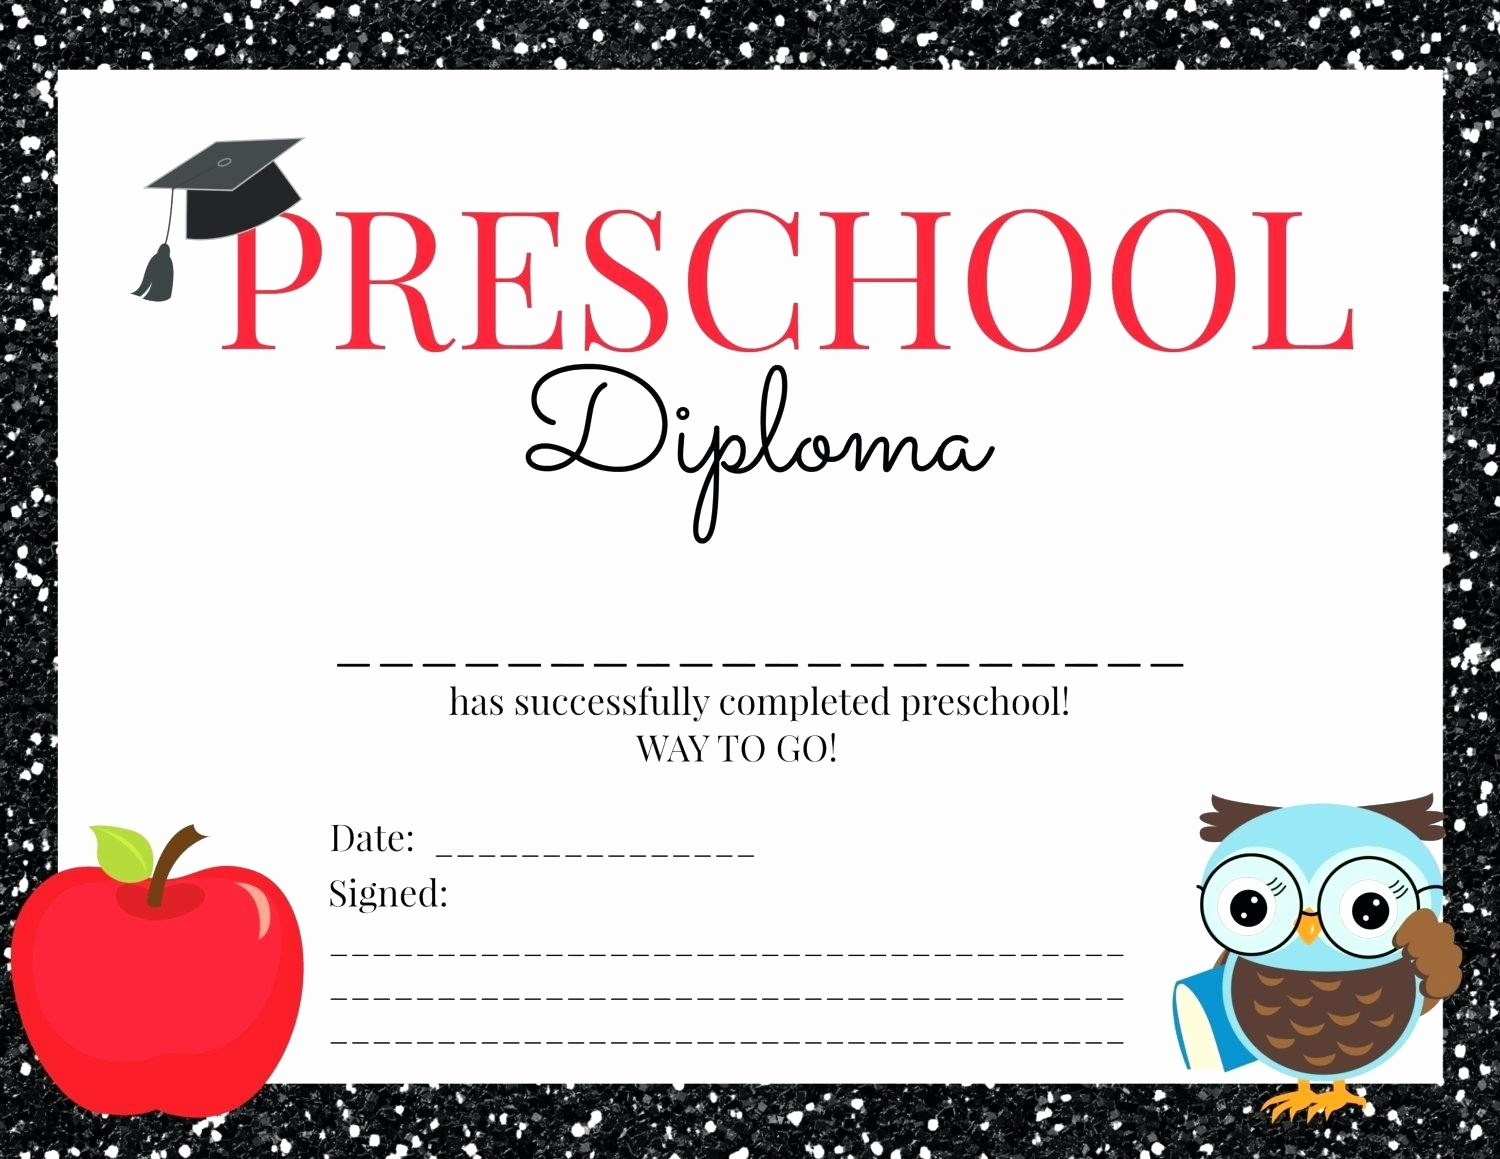 Preschool Diplomas Templates Printable Free Awesome Template Preschool Certificate Template Graduation for